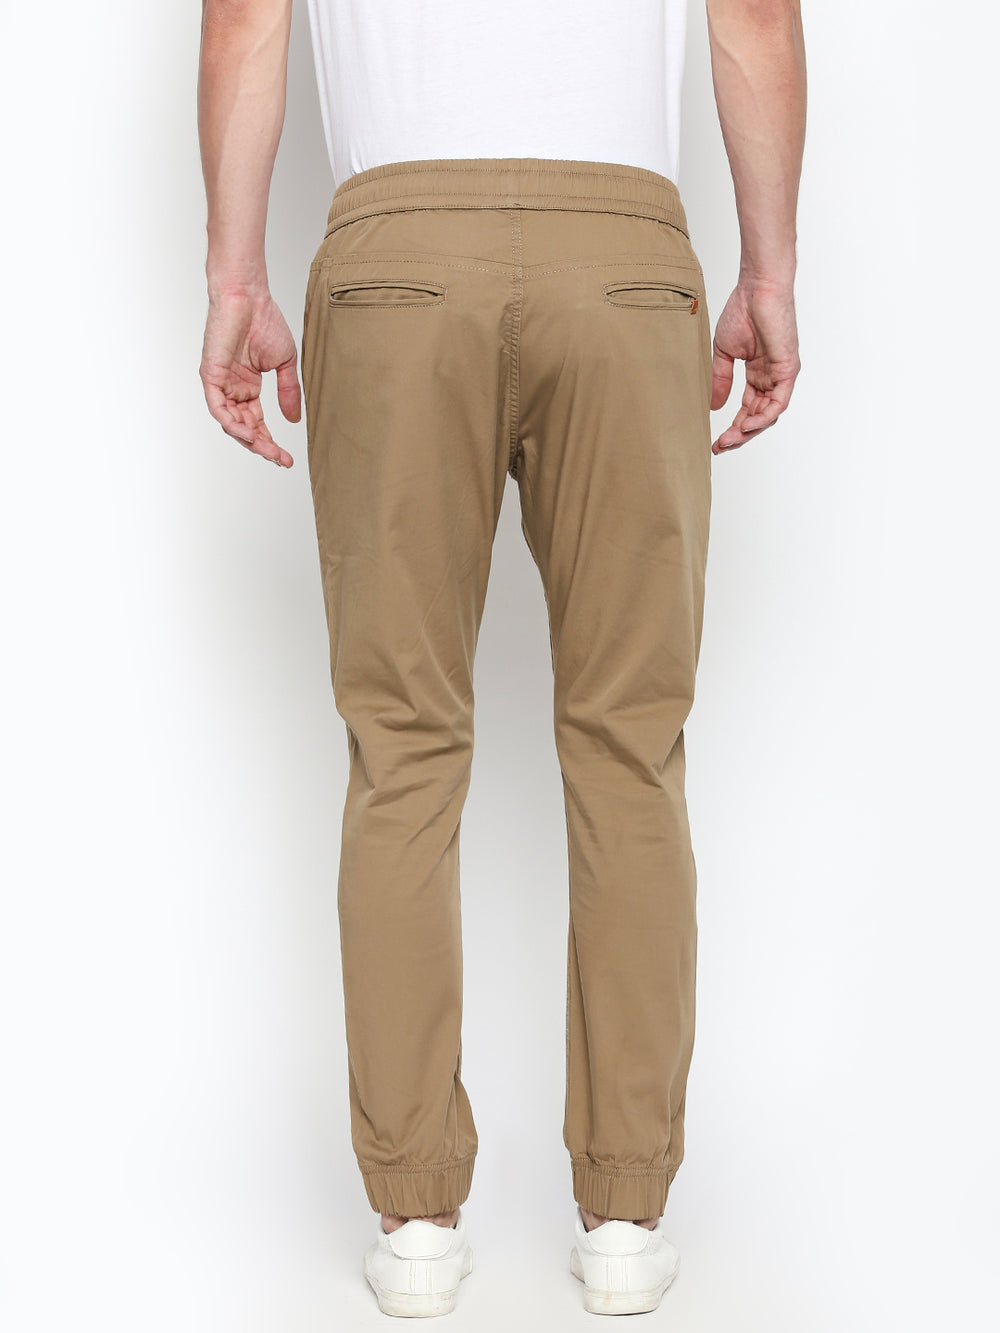 Disrupt Cream Regular Fit Joggers For Men's